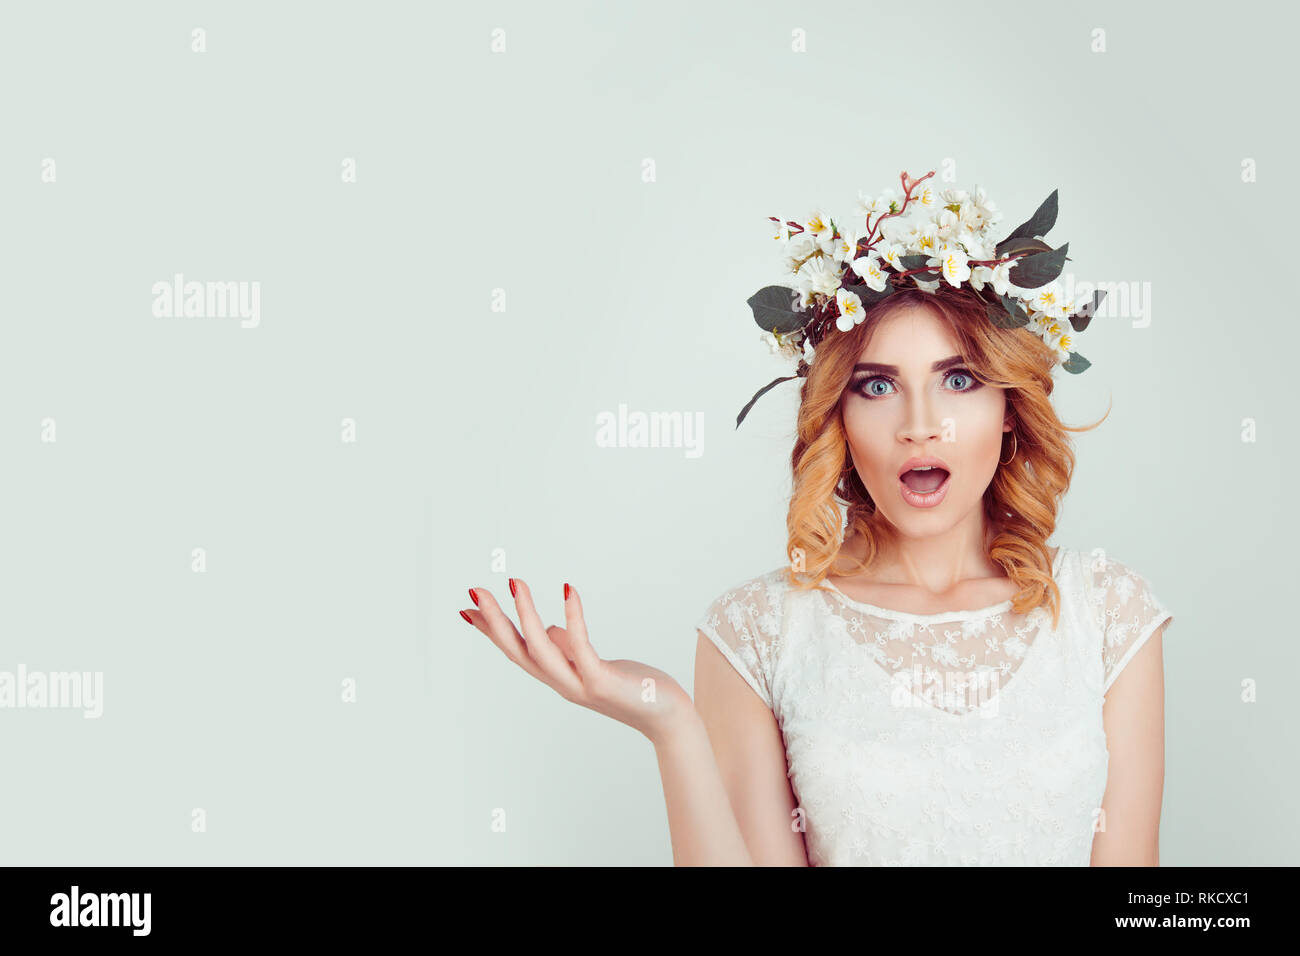 Surprised stunned woman in floral headband portrait - Stock Image